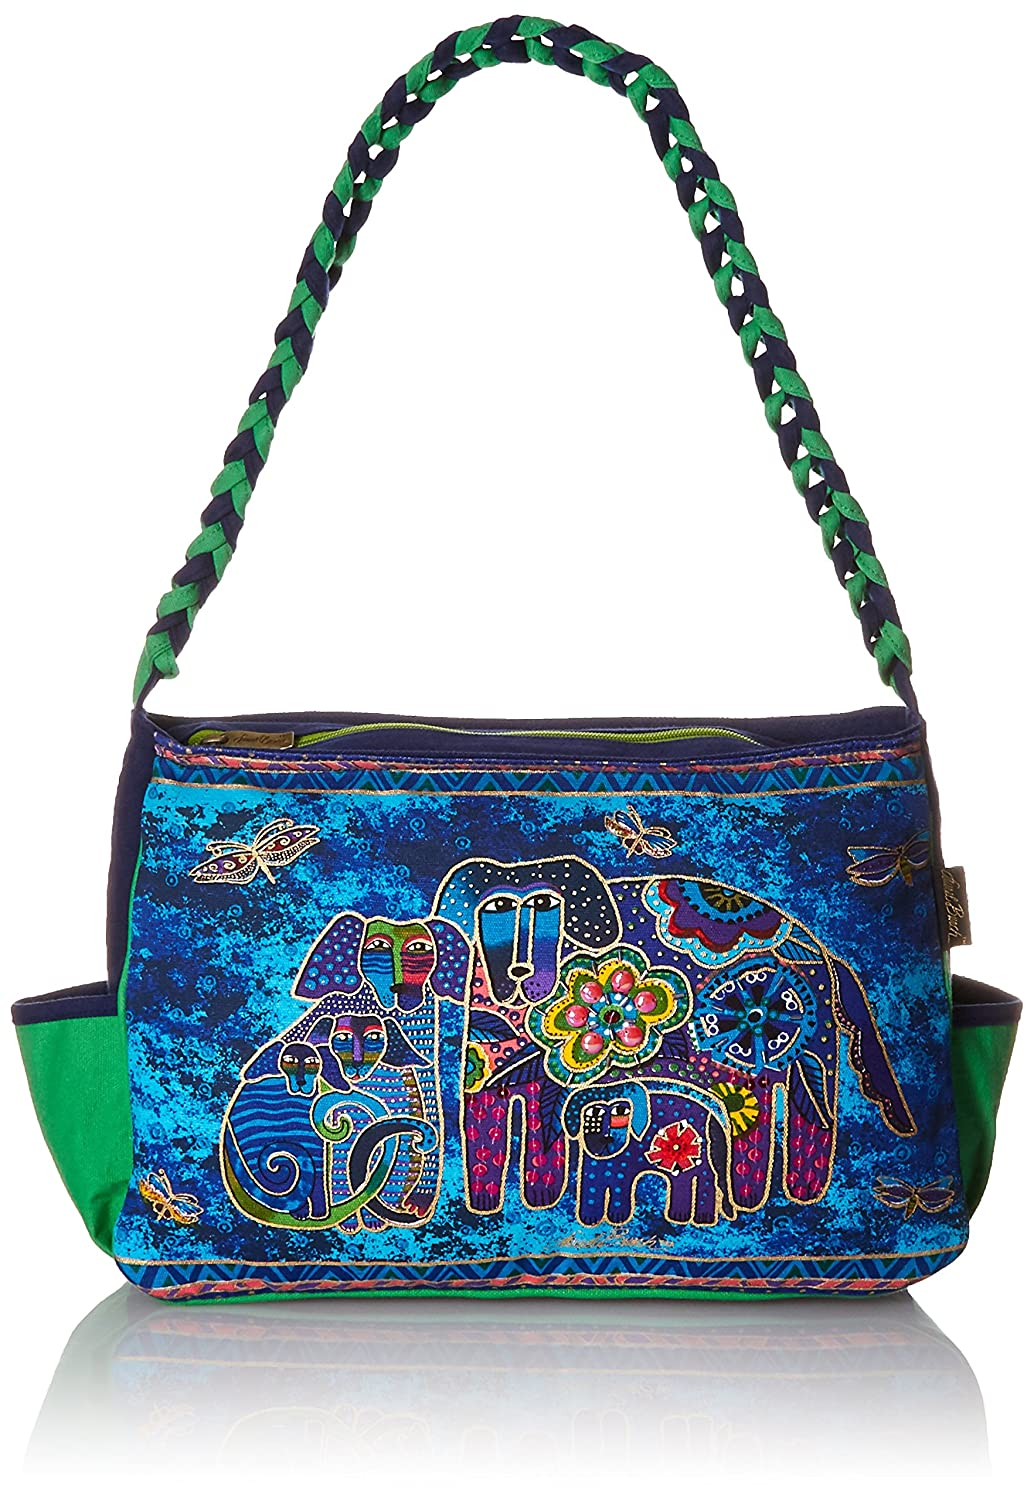 Laurel Burch Medium Hobo Zipper Top, 14-1/2-Inch by 4-1/2-Inch by 10-Inch, Canine Family LB4853